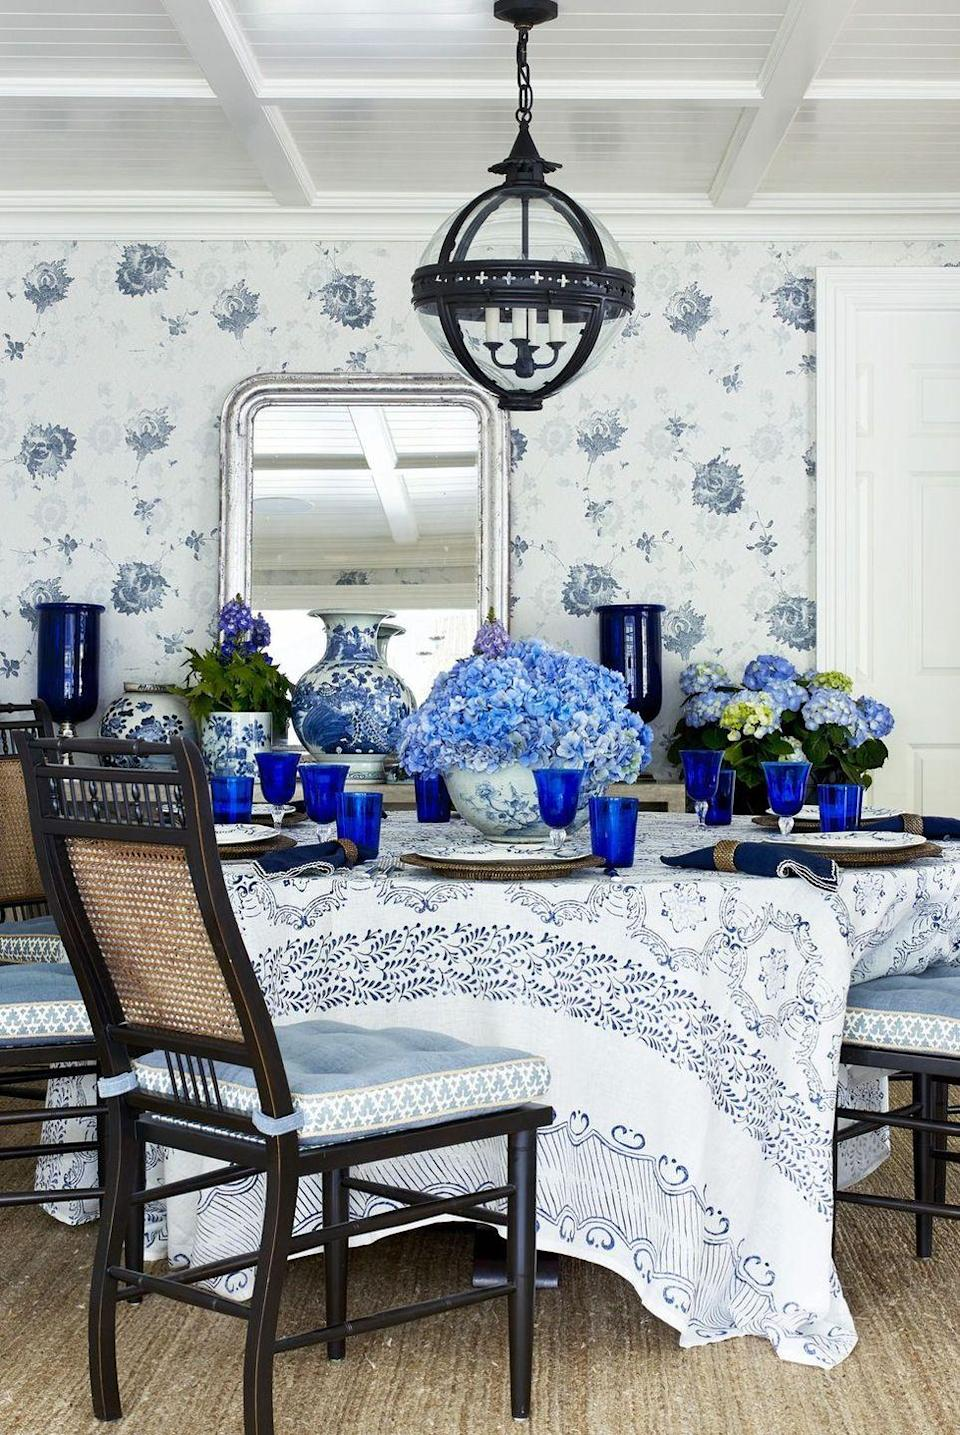 """<p>Designer Lee Ann Thornton created a blue color palette in this <a href=""""https://www.housebeautiful.com/design-inspiration/house-tours/g13120250/lee-ann-thornton-connecticut-ranch/"""" rel=""""nofollow noopener"""" target=""""_blank"""" data-ylk=""""slk:Greenwich, Connecticut ranch"""" class=""""link rapid-noclick-resp"""">Greenwich, Connecticut ranch</a>, starting with the wallpaper, tablecloth, and glasses, and ending with vibrant blue hydrangeas. If you like the idea of going tonal, follow this example on Sunday for your Easter table by gone monochromatic. </p><p><strong><em>Anissa Kermiche Popoton Ceramic Vase, $70 </em></strong><a class=""""link rapid-noclick-resp"""" href=""""https://go.redirectingat.com?id=74968X1596630&url=https%3A%2F%2Fwww.matchesfashion.com%2Fus%2Fproducts%2FAnissa-Kermiche-Popotin-ceramic-vase-1316666&sref=https%3A%2F%2Fwww.housebeautiful.com%2Fentertaining%2Fflower-arrangements%2Fg19409803%2Feaster-flower-arrangements%2F"""" rel=""""nofollow noopener"""" target=""""_blank"""" data-ylk=""""slk:BUY NOW"""">BUY NOW</a></p>"""